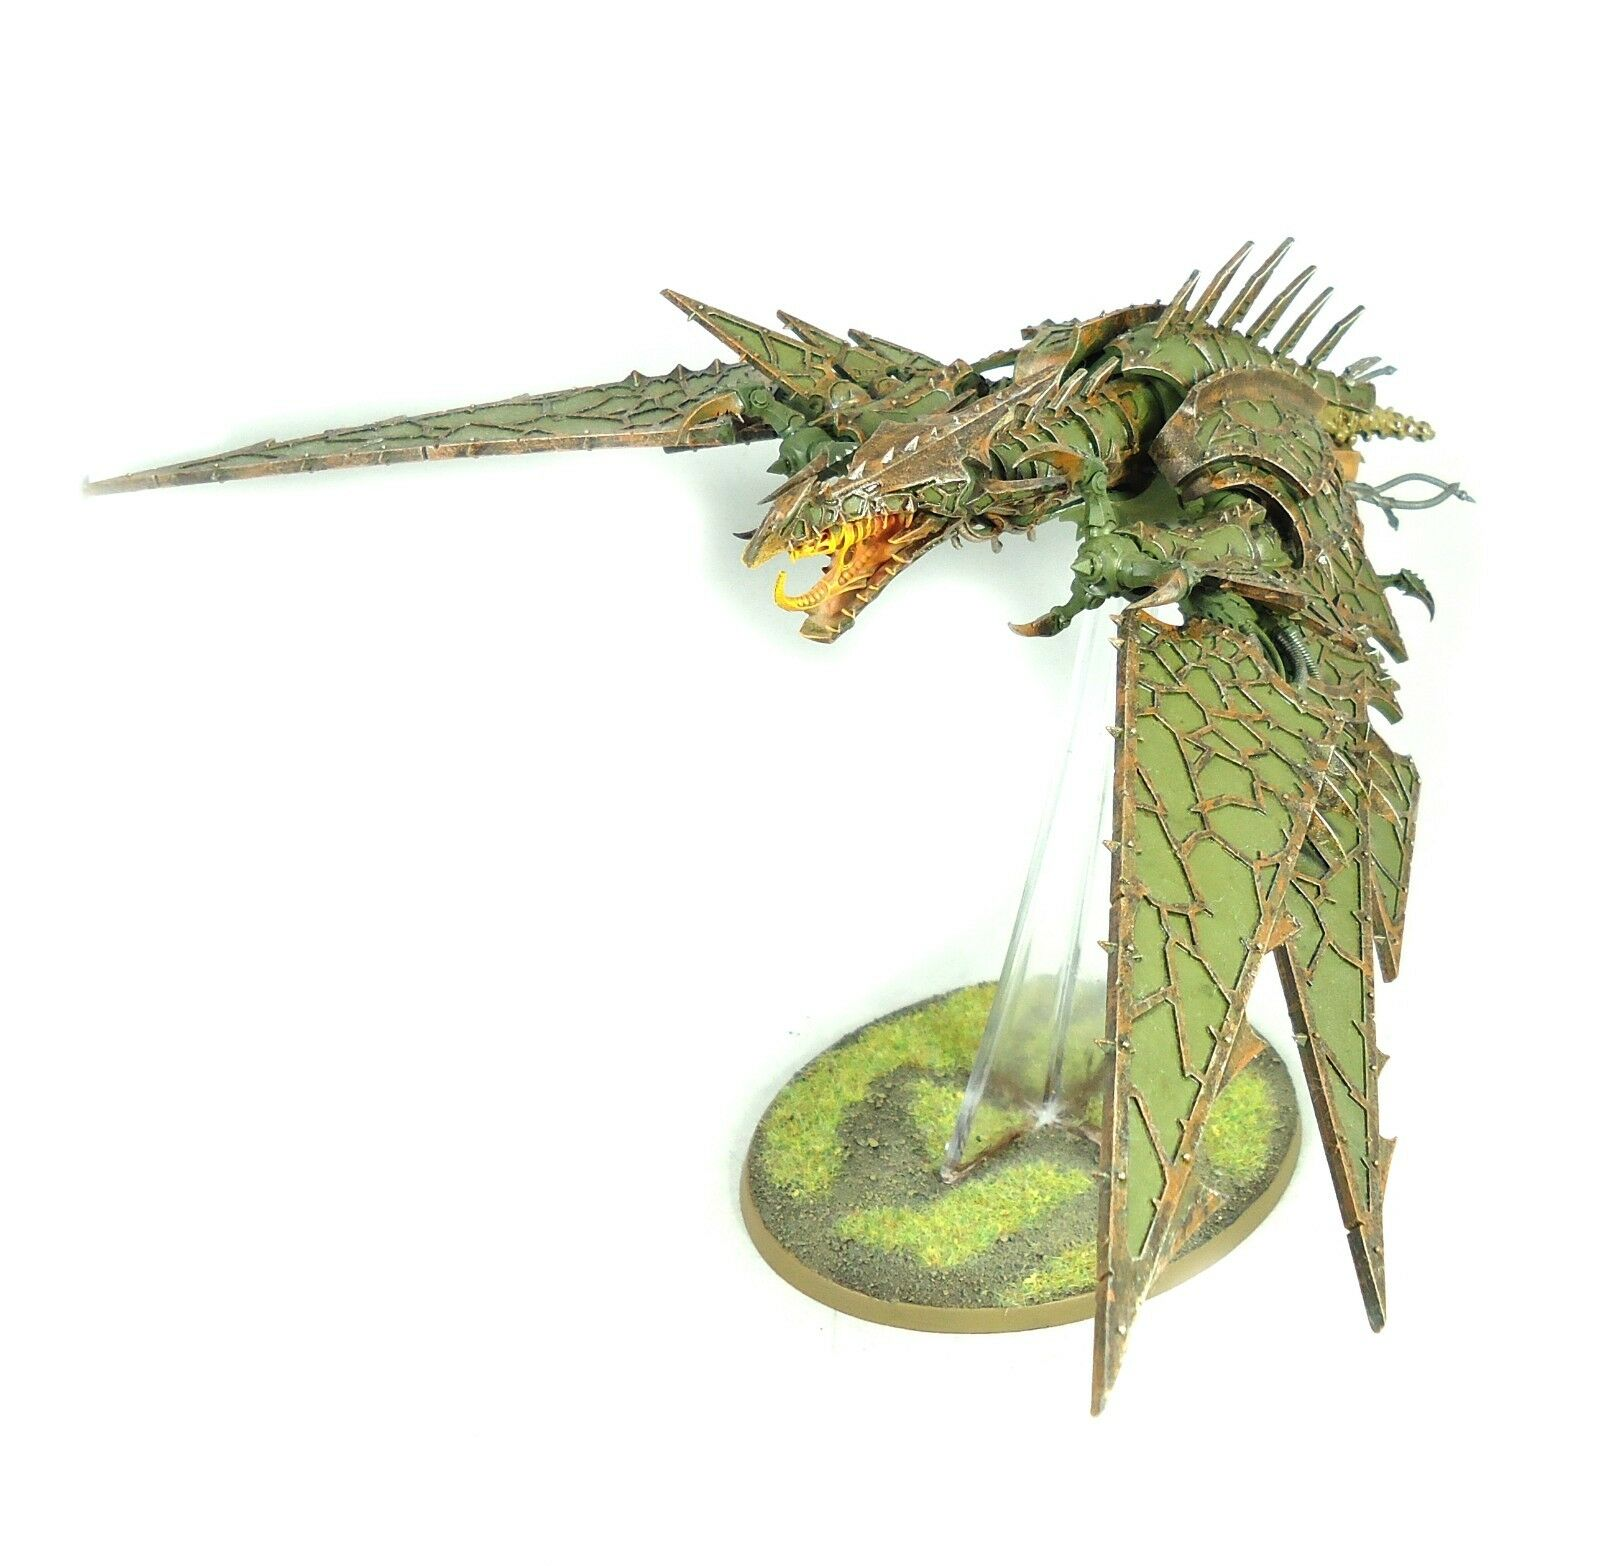 Warhammer 40k Army Chaos Space Marines Heldrake Painted And Based Plastic